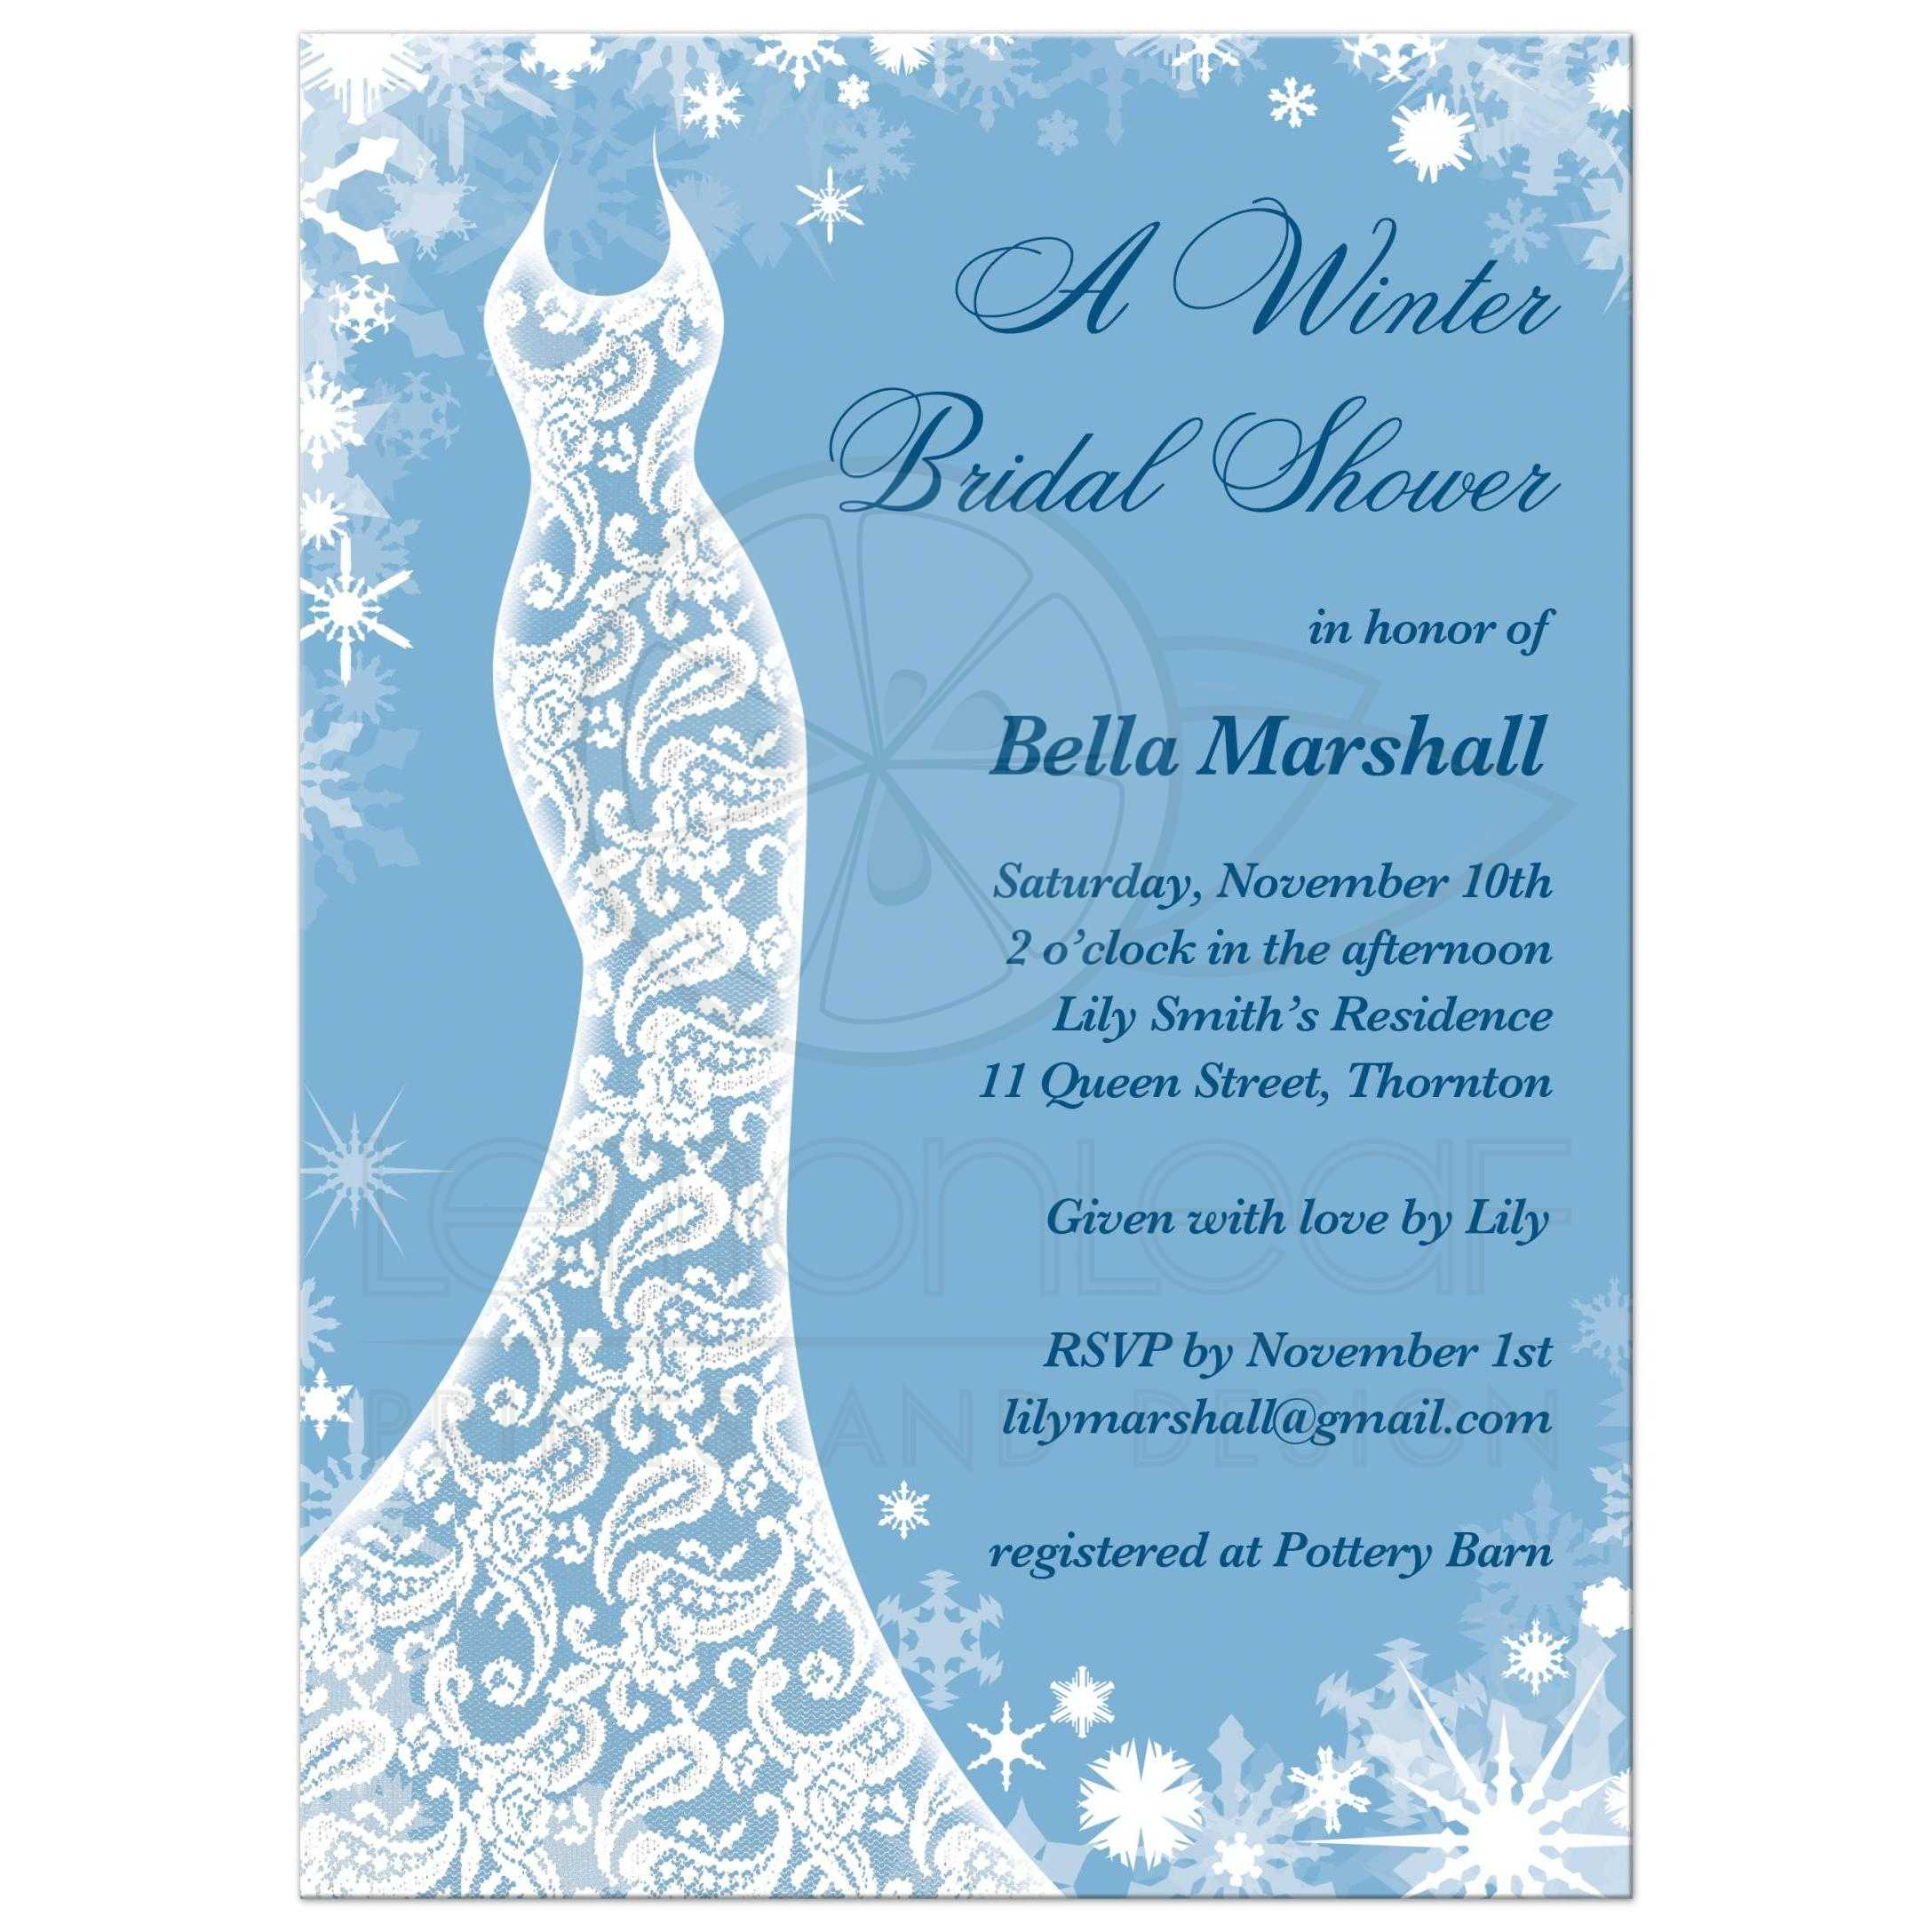 Bridal shower invitation beautiful winter ice blue this winter bridal shower invitation is decorated with delicate snowflakes and a lacy wedding dress on filmwisefo Choice Image